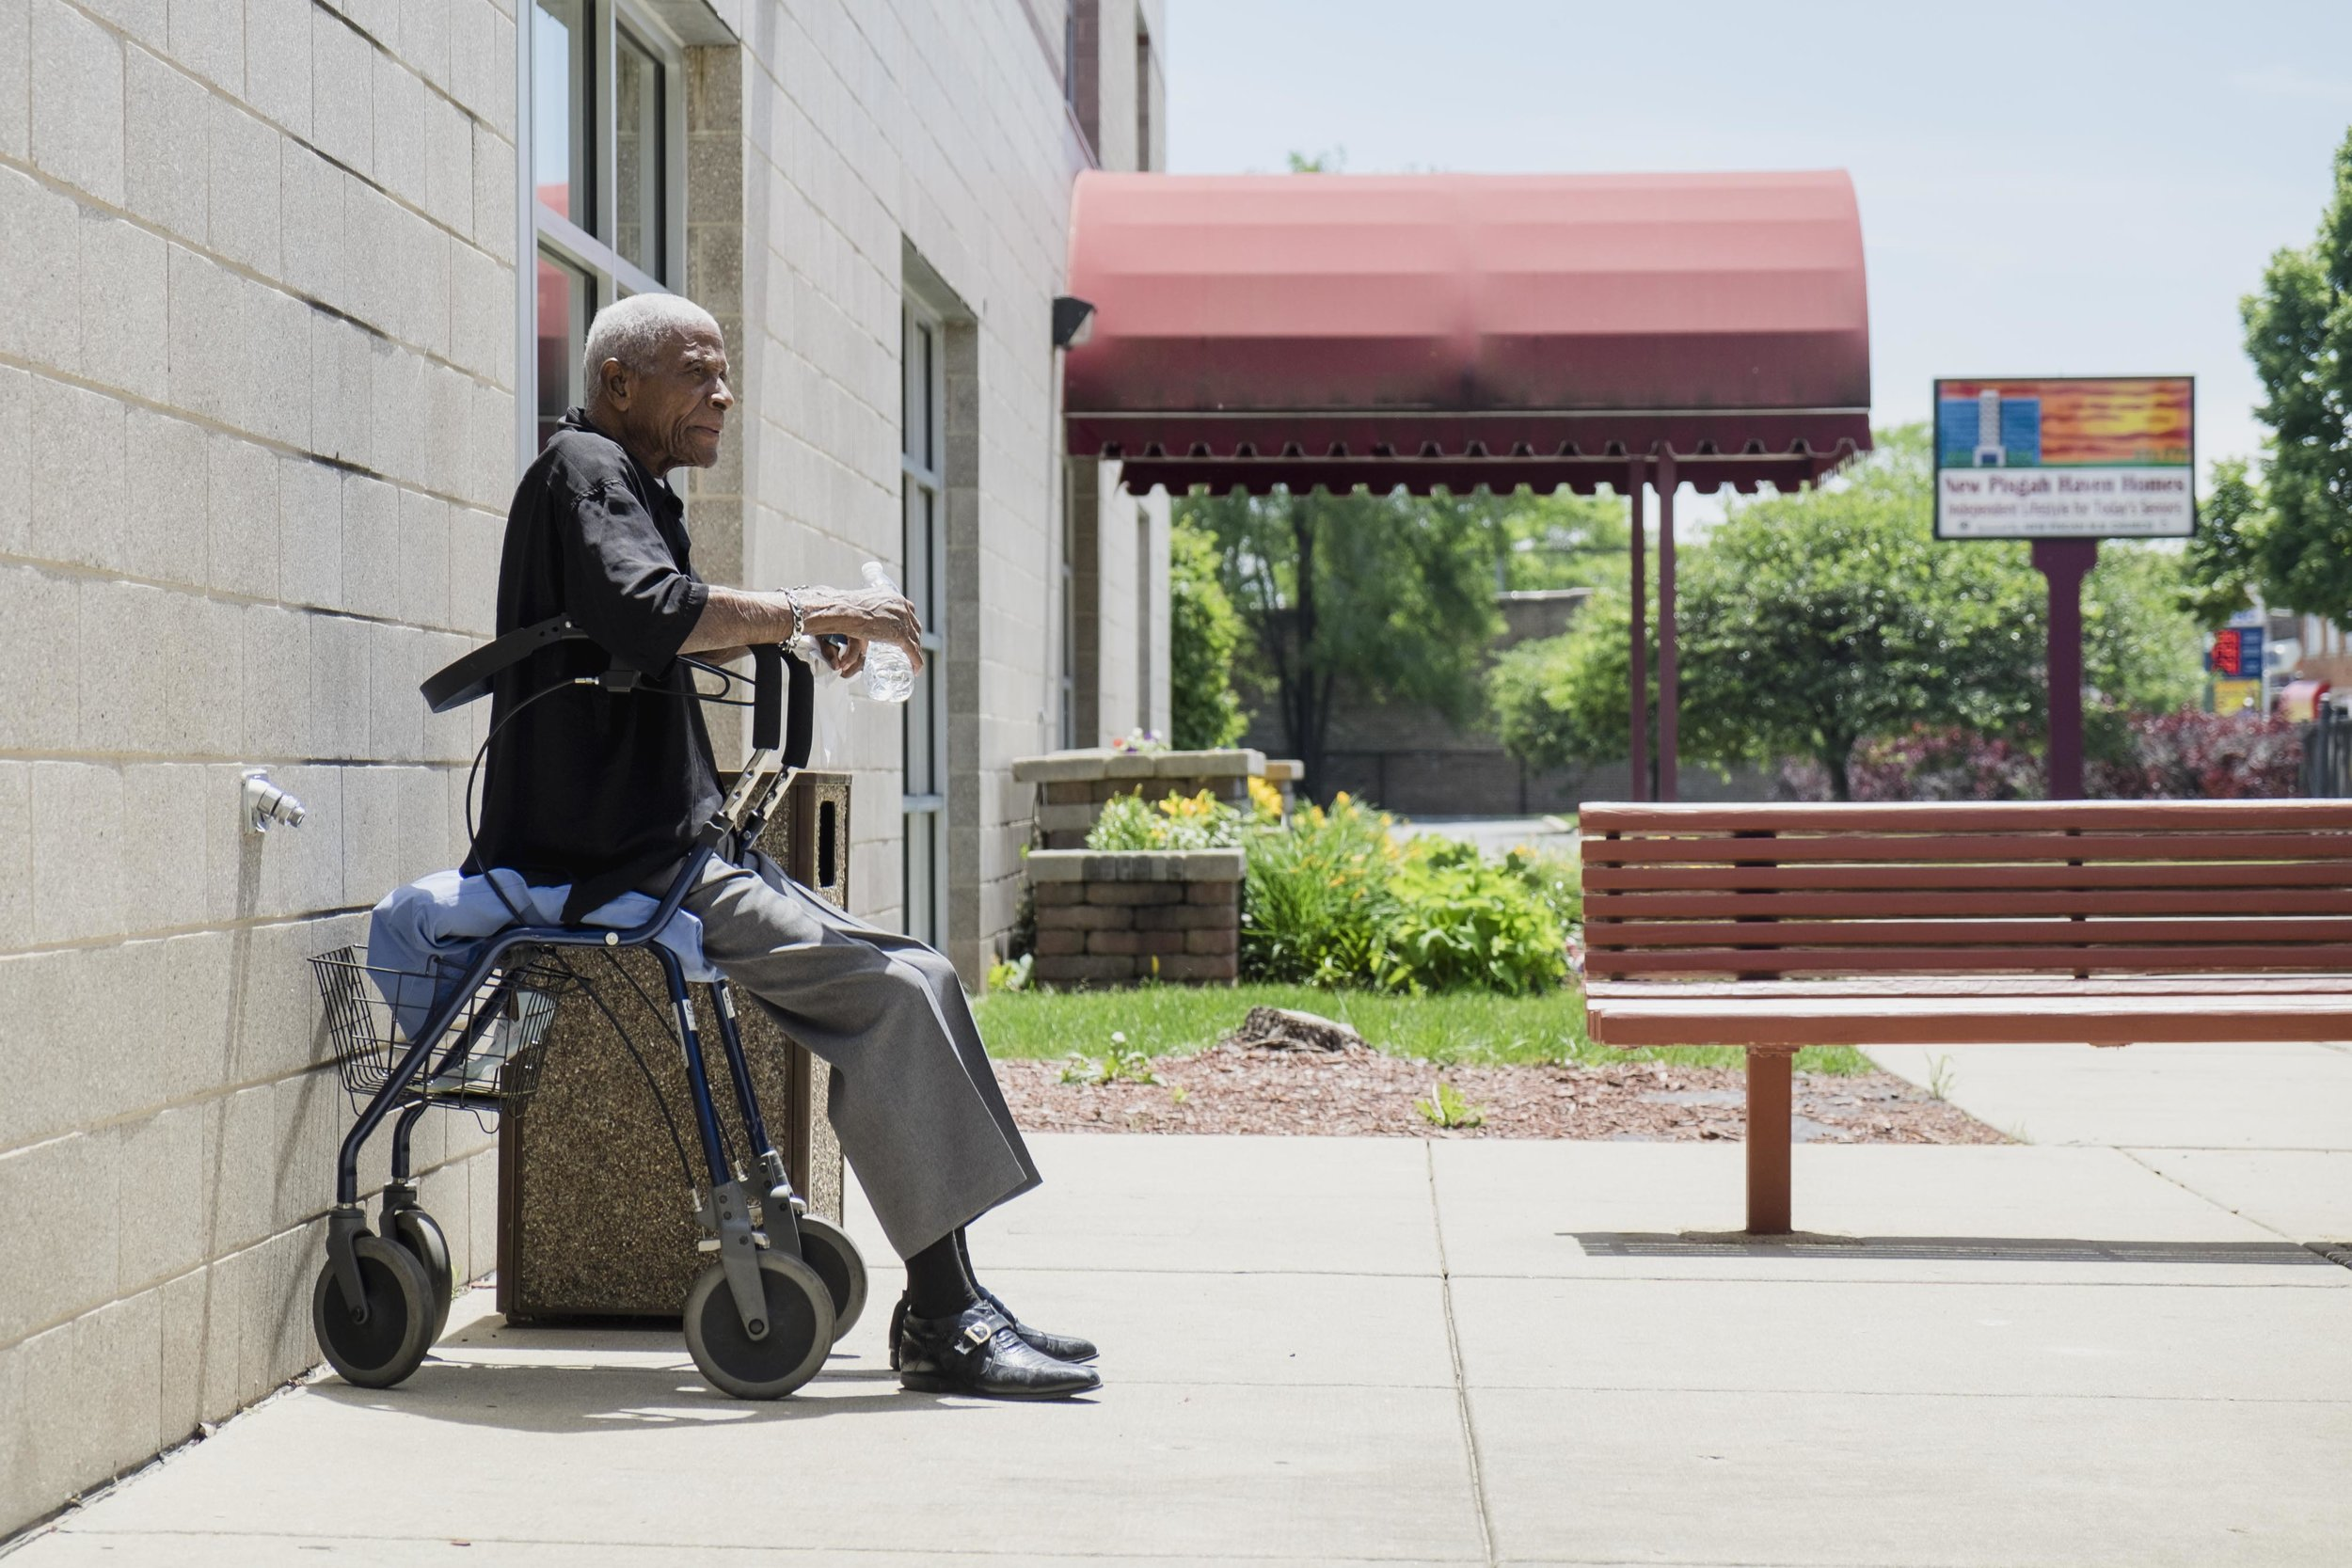 """Joe Boyd, 82, gets some sunshine outside the senior building he lives in in Auburn Gresham. """"A lot of times as you get older, [people] leave you, you know what I mean? One by one,"""" said Boyd, a veteran who often reflects on his life. """"I've been ups and downs, around and around…I cry a lot and it's because of happiness and joy."""""""